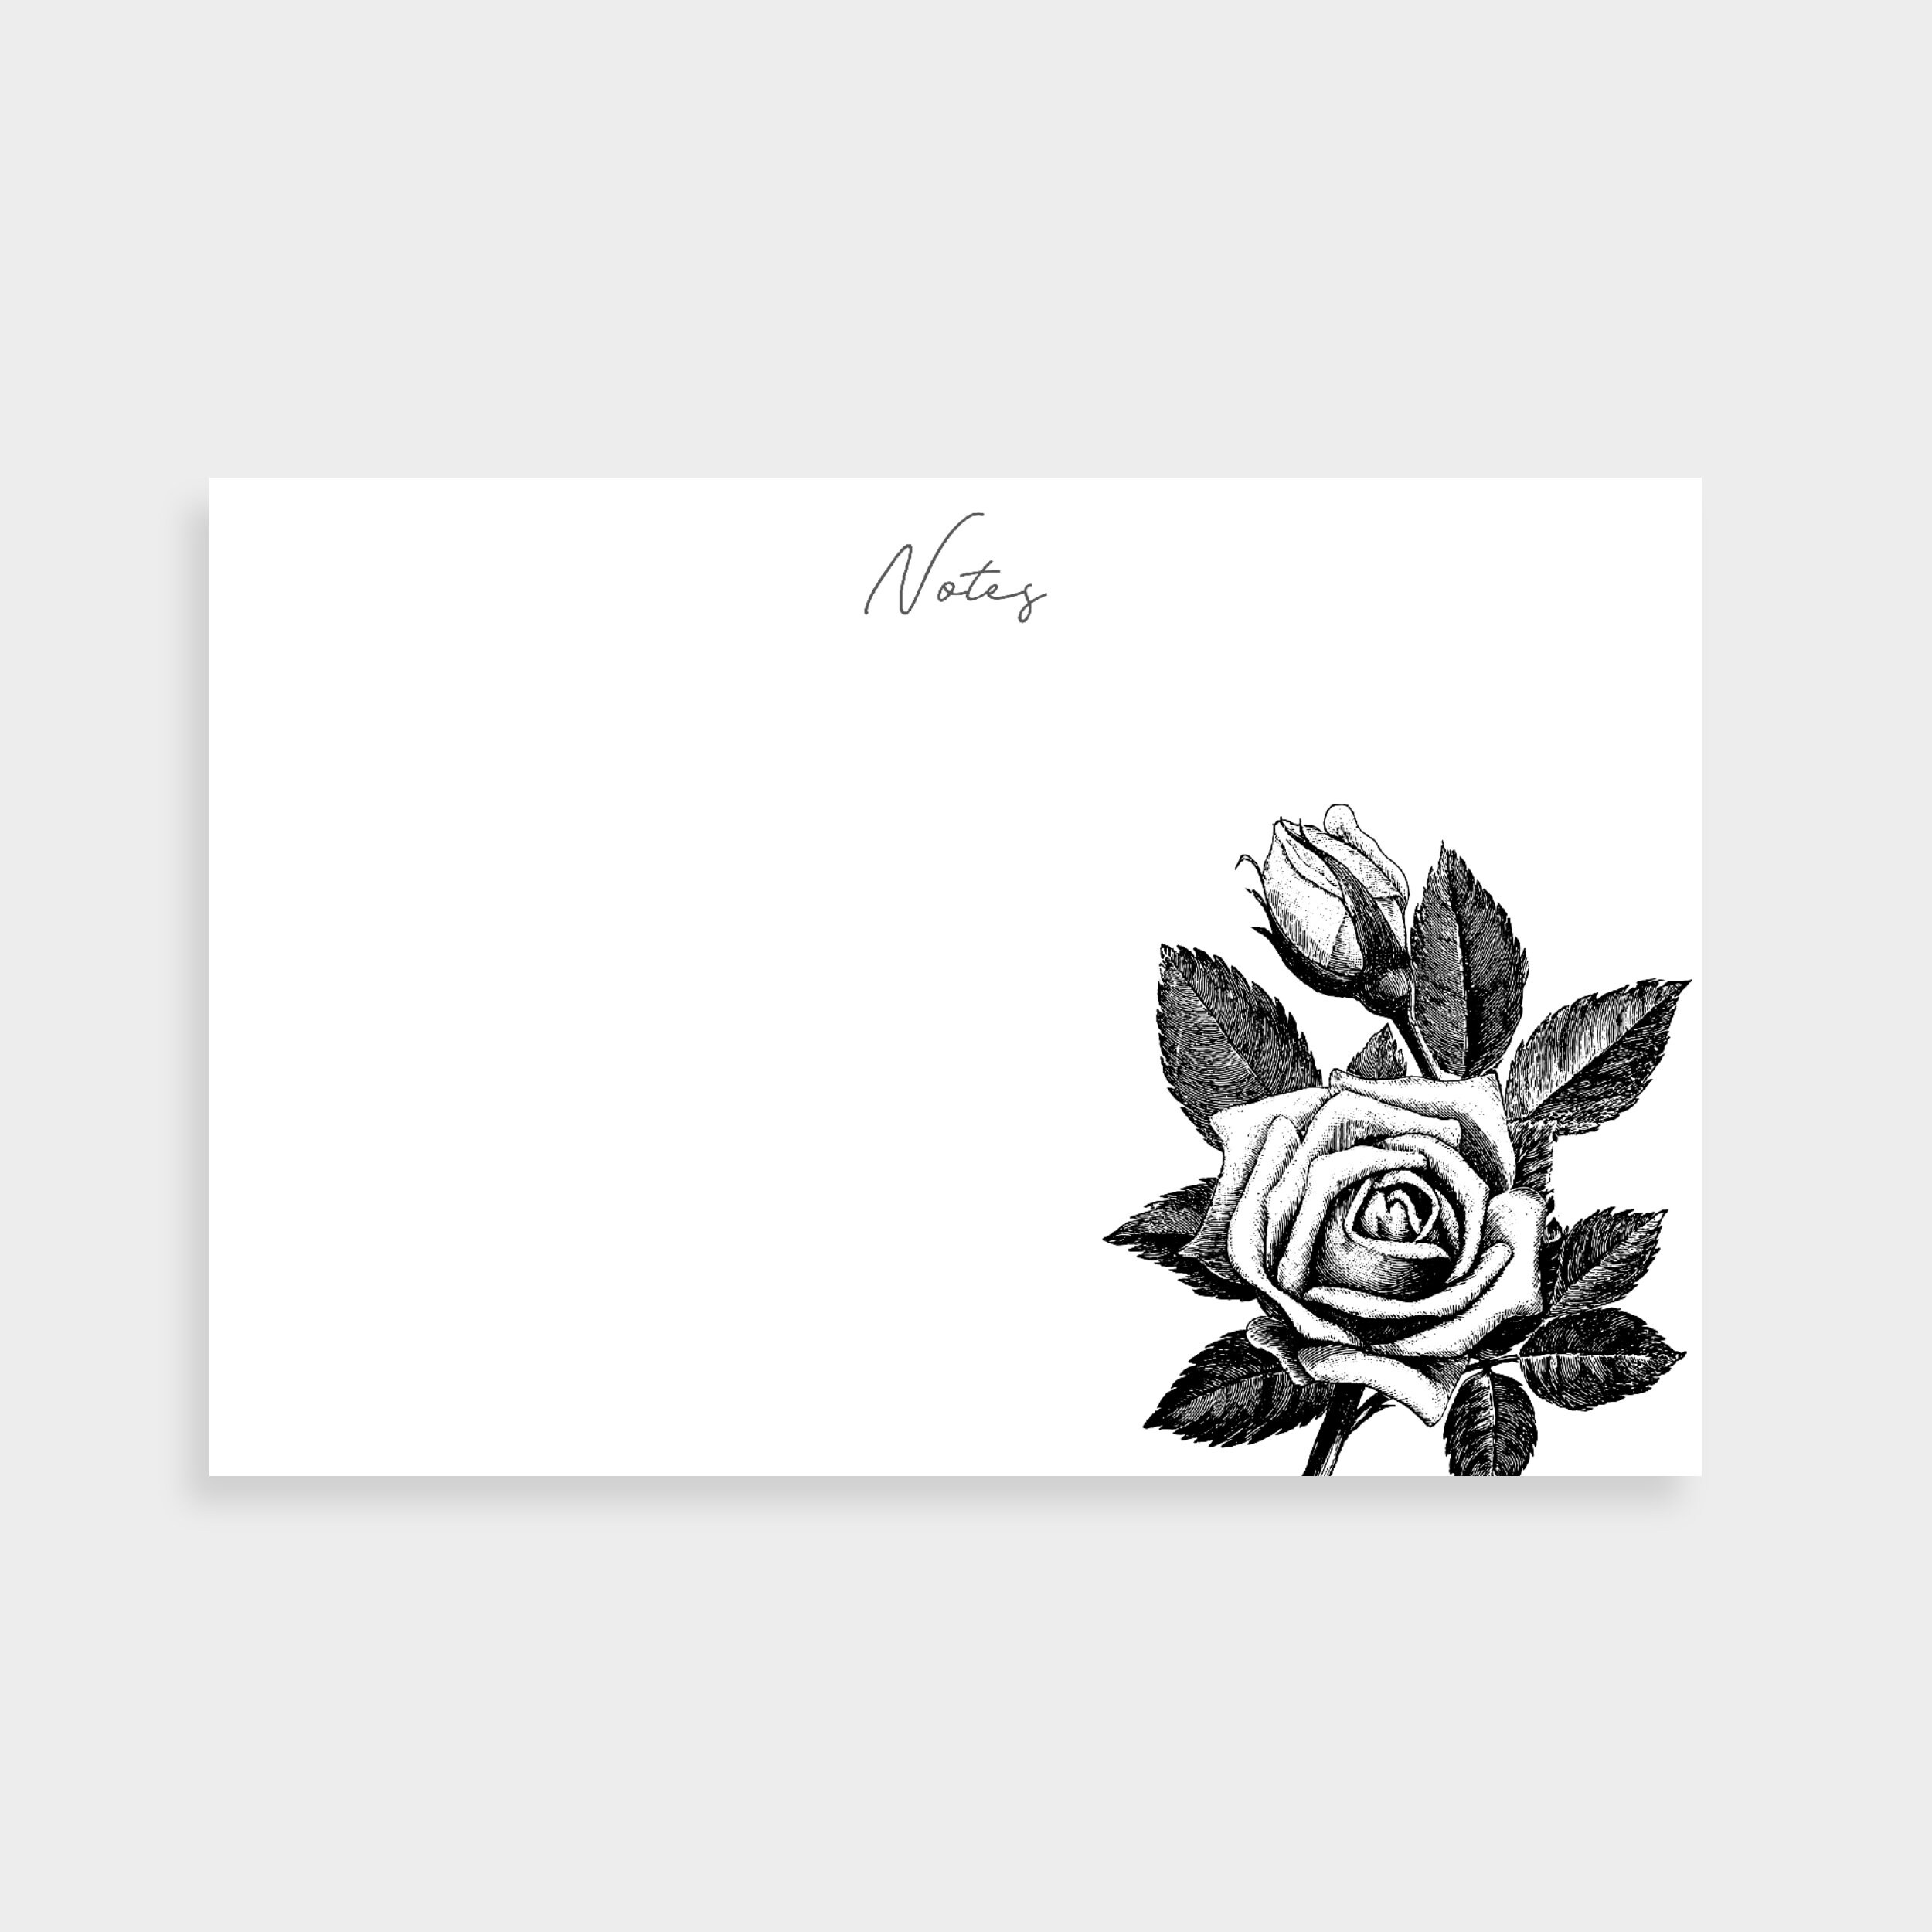 "White notecard with a black and white illustration of a rose in the bottom right. Notecard says ""Notes"" in the top centre."